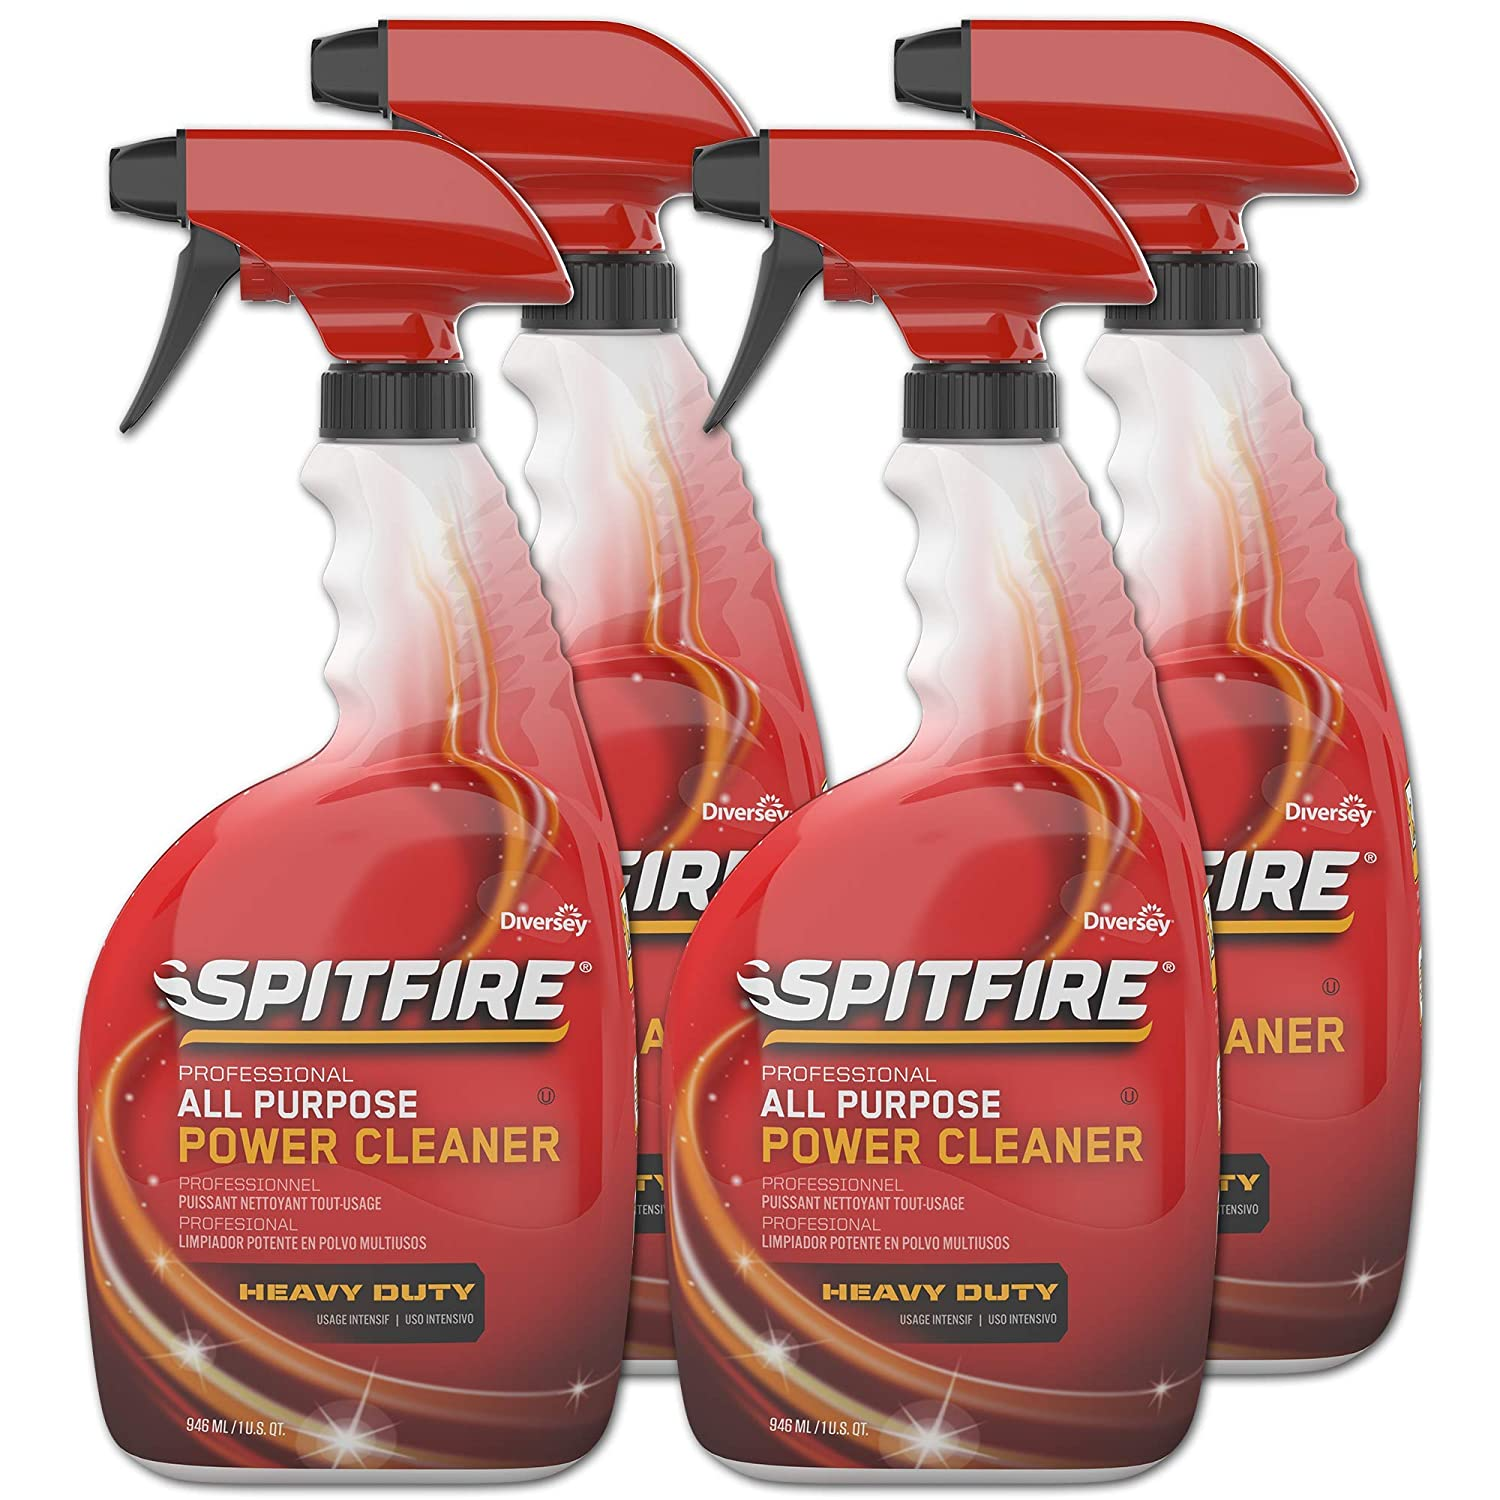 Diversey Spitfire Professional All Purpose Power, 32 Ounce Capped Spray Bottle (4 Pack) CBD540038